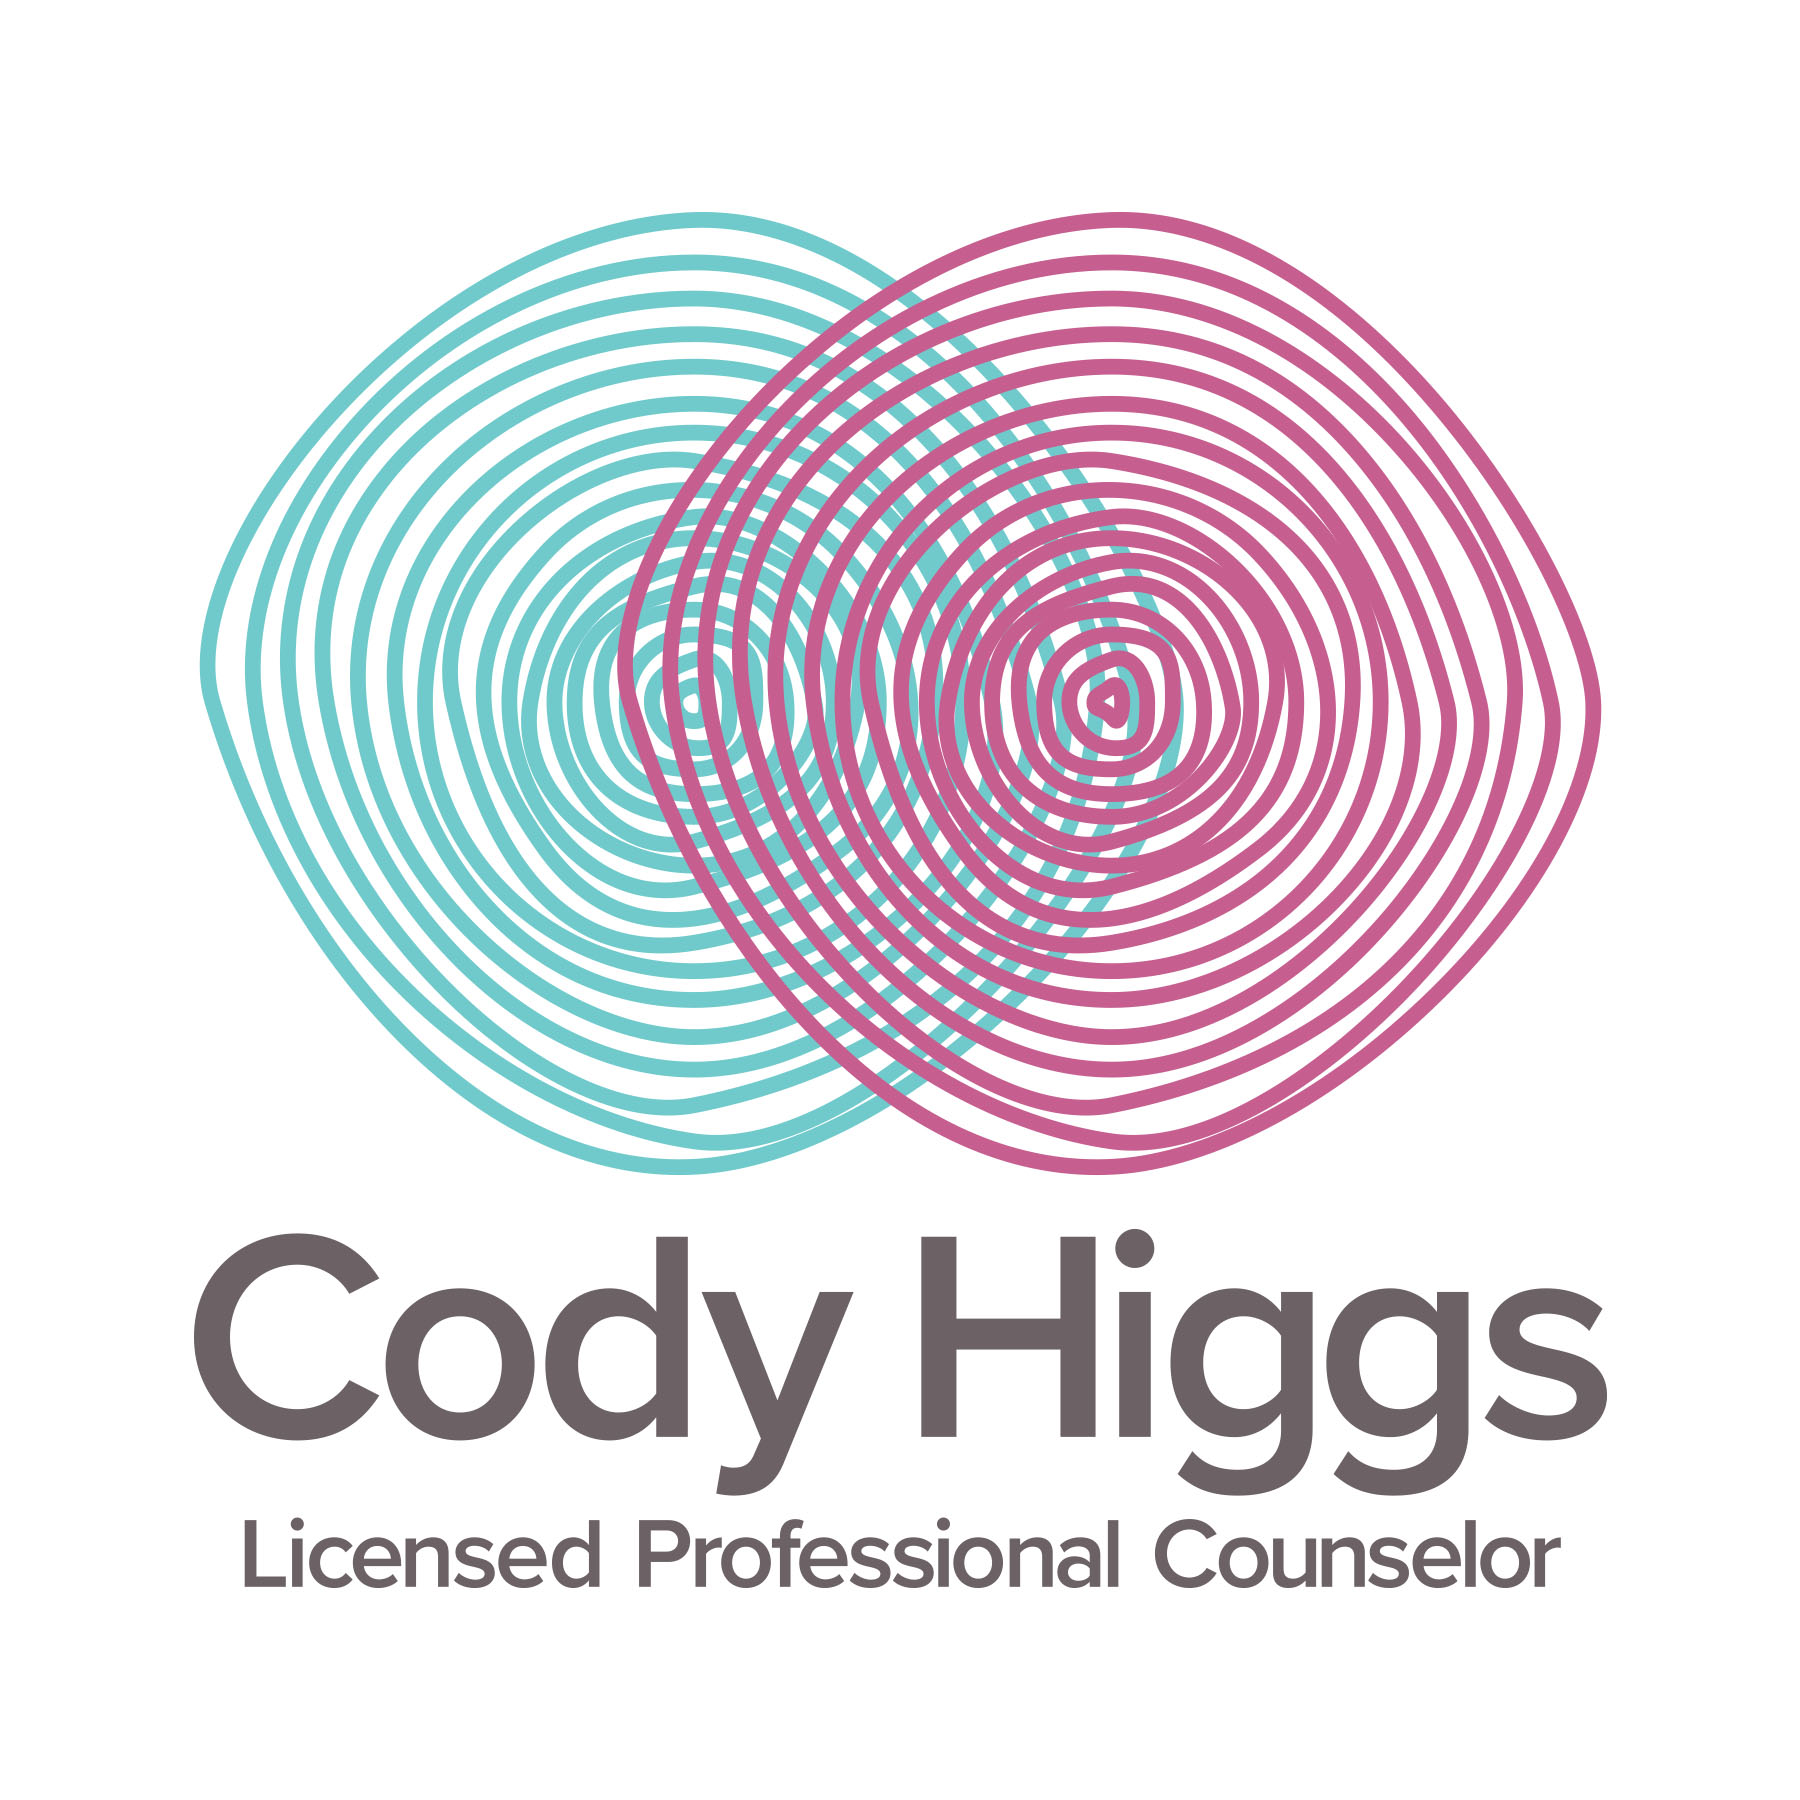 Cody Higgs LPC provides counseling in Franklin Tennessee and online in Tennessee for teen girls and young adult women